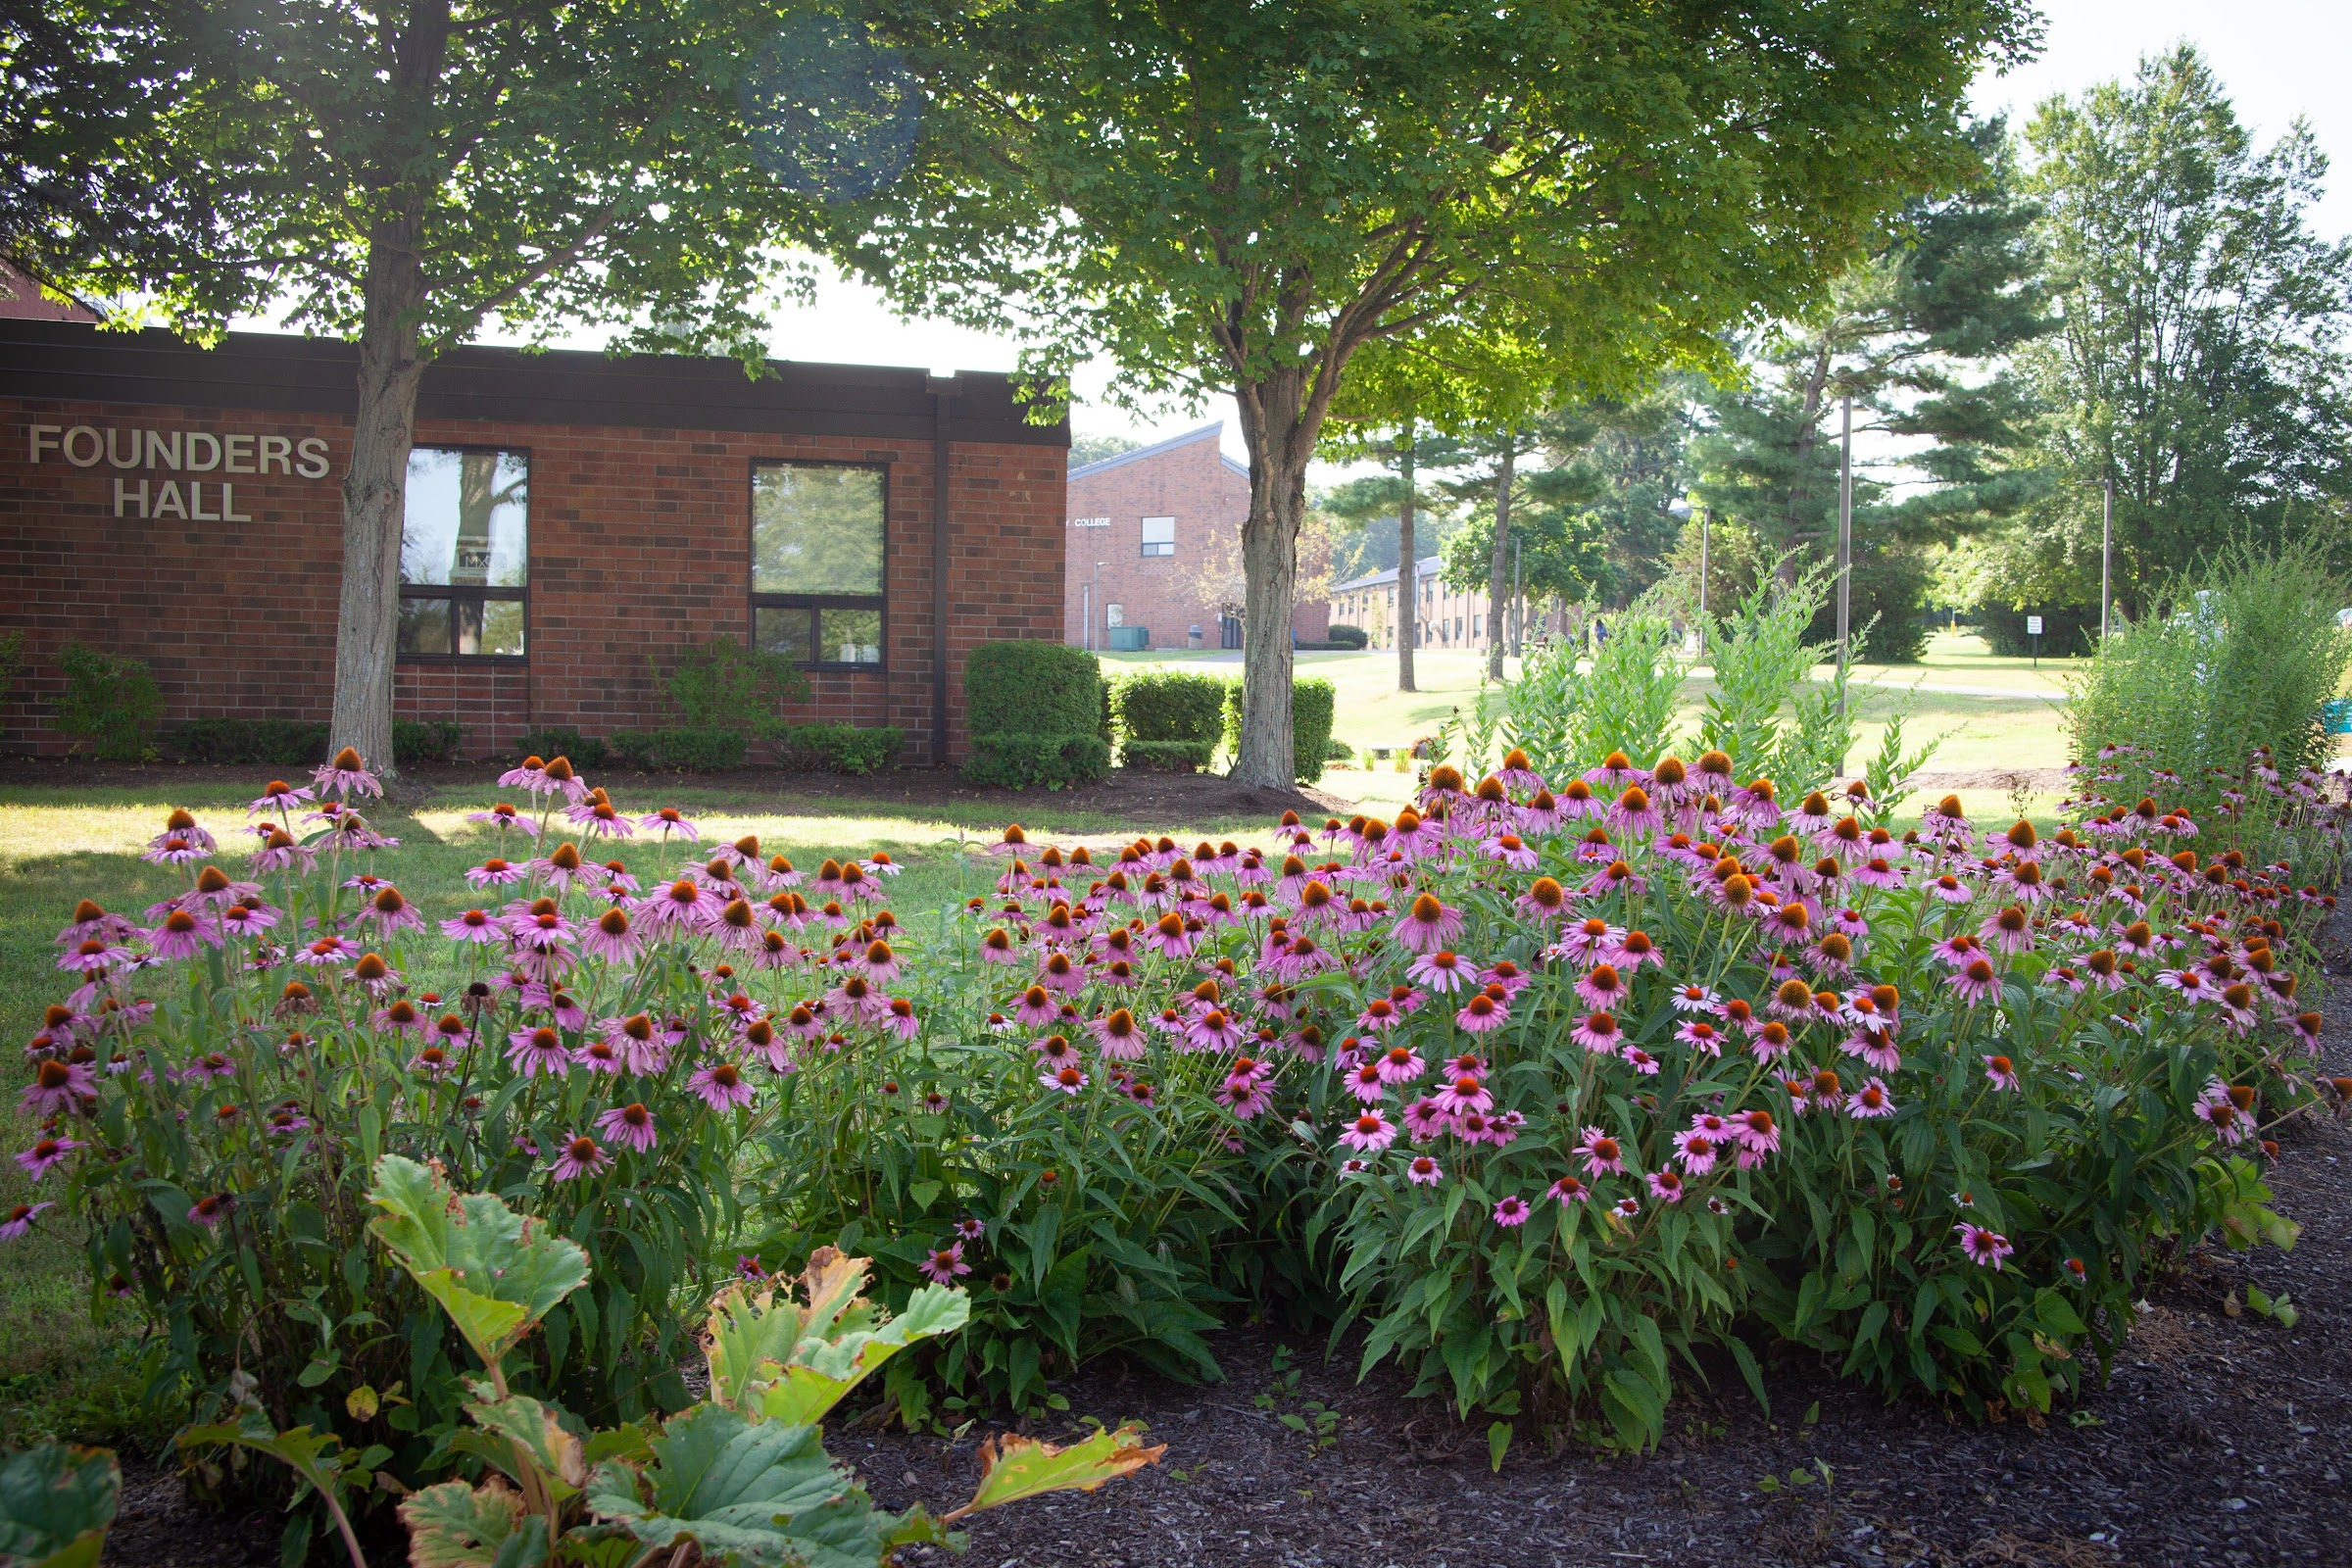 flower garden facing Founders